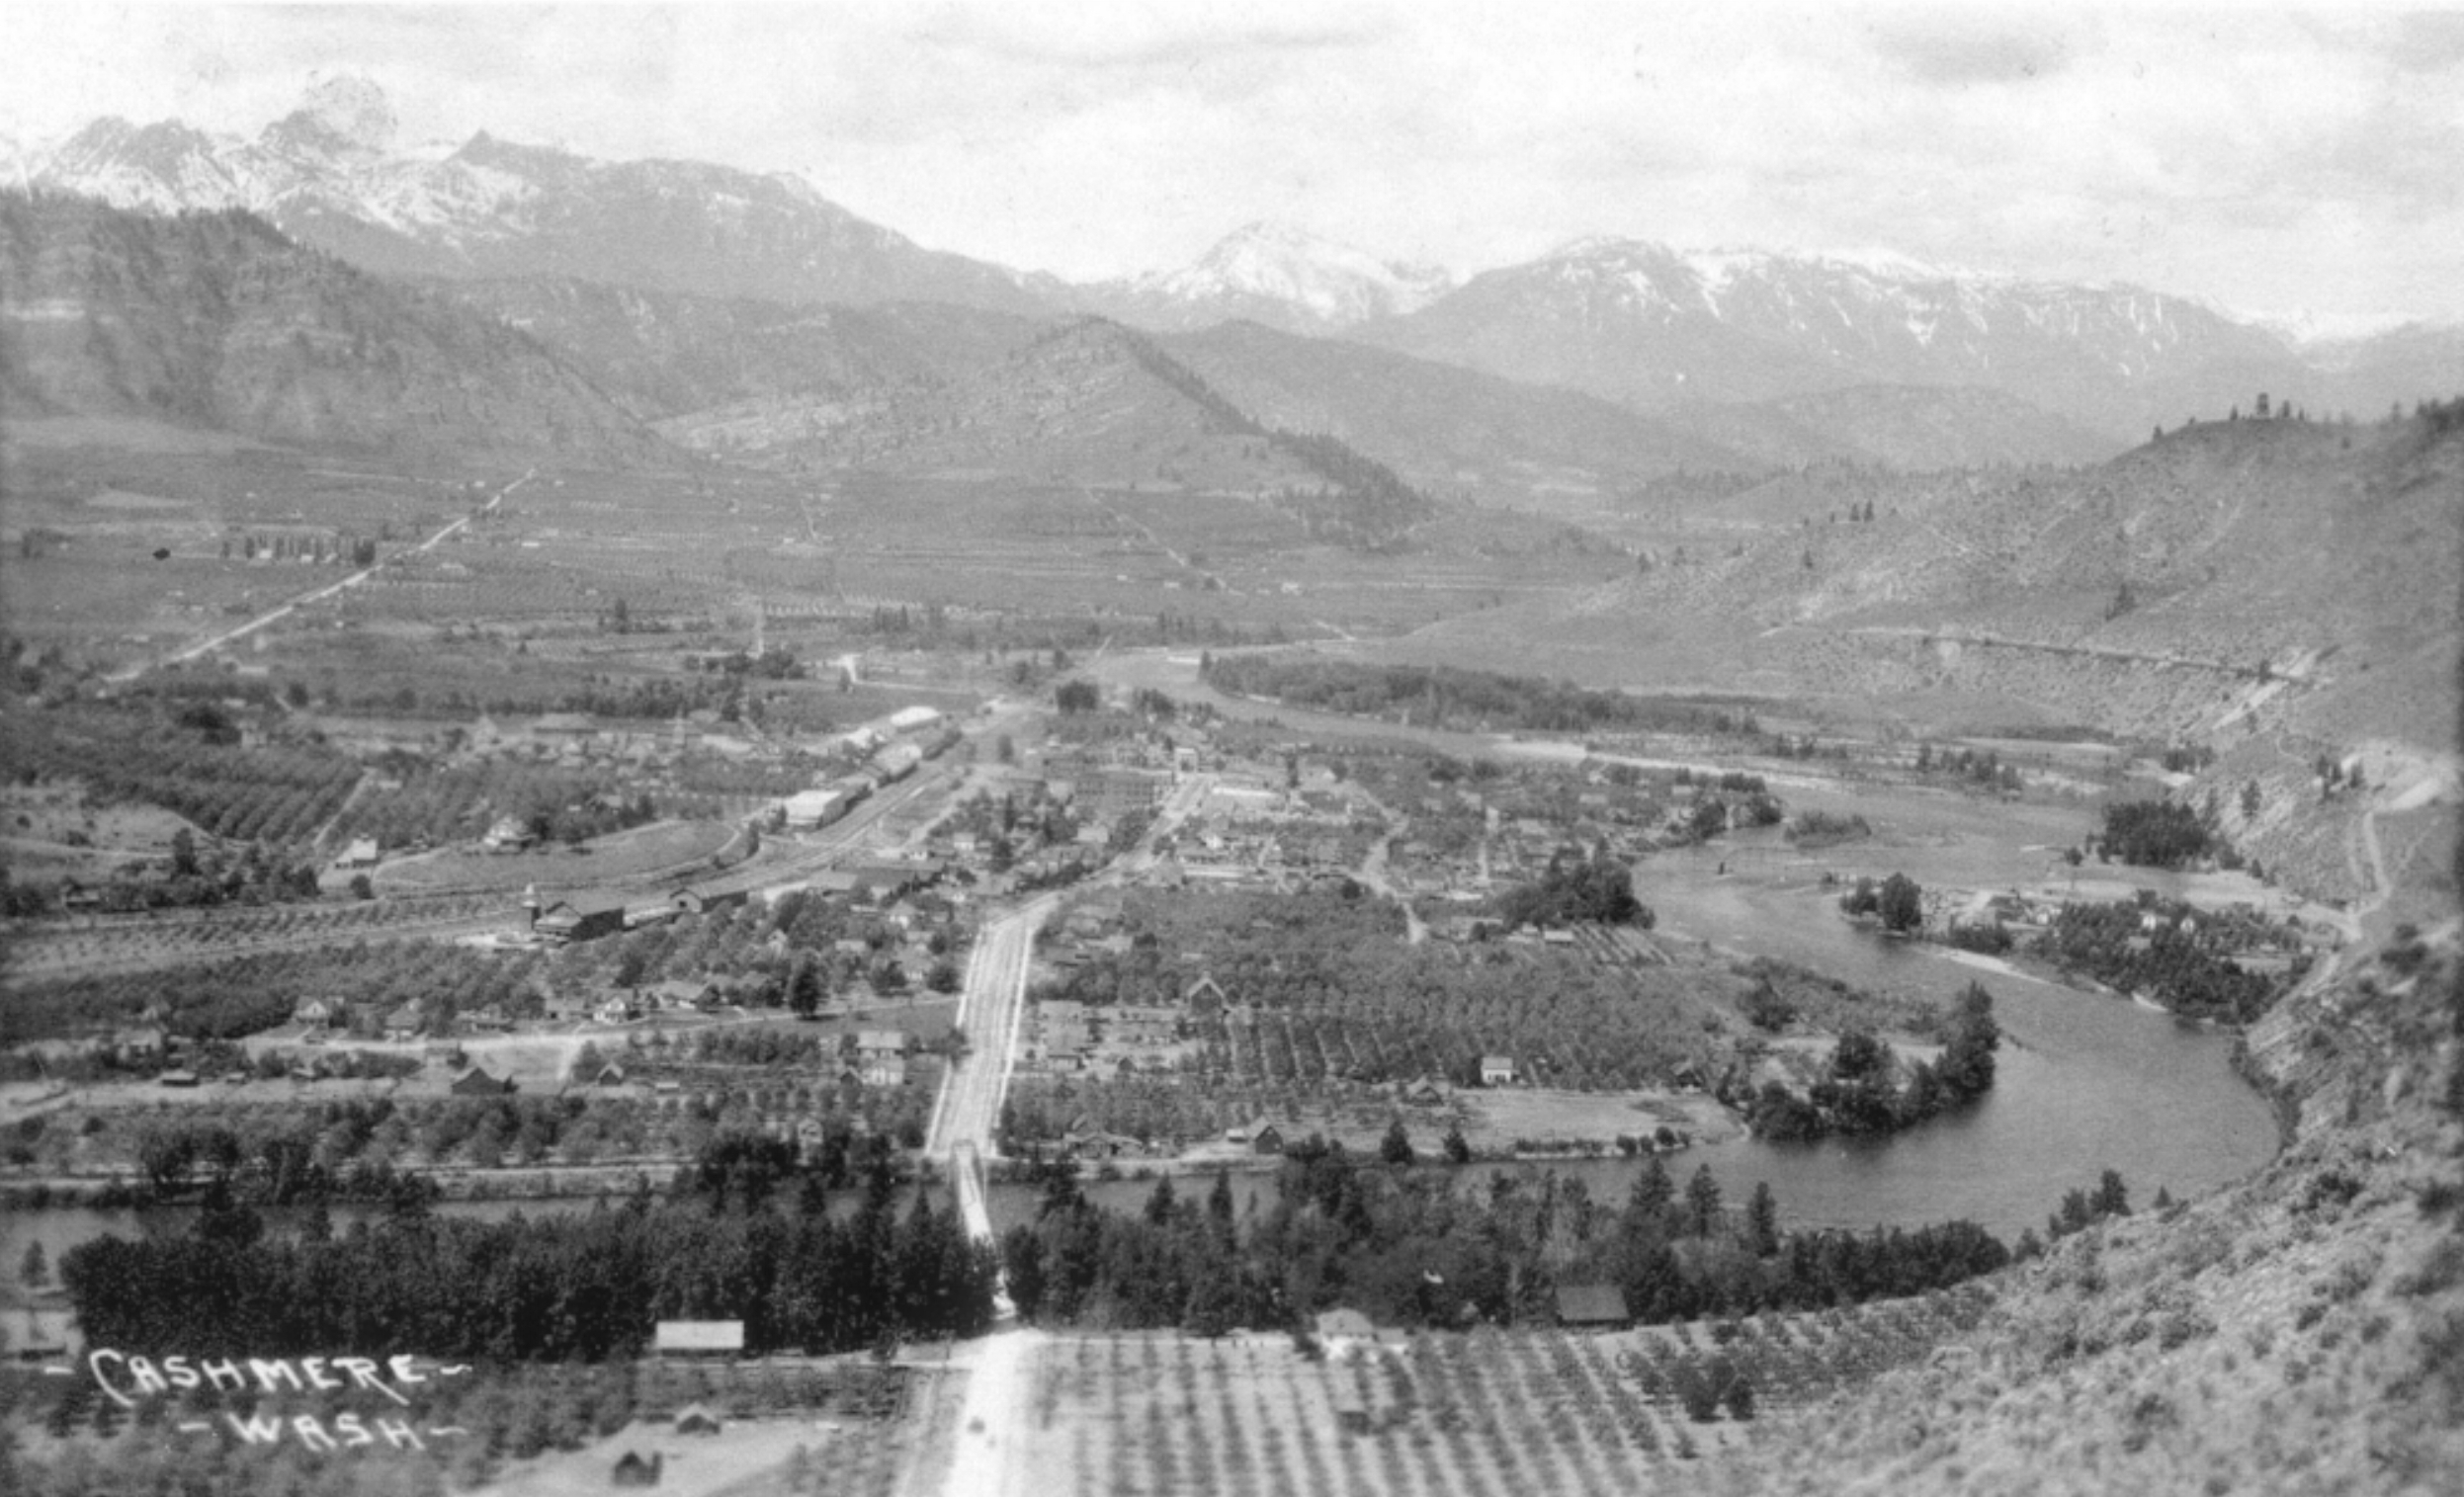 Photo of Cashmere, WA, c. 1909. Photographer unknown.